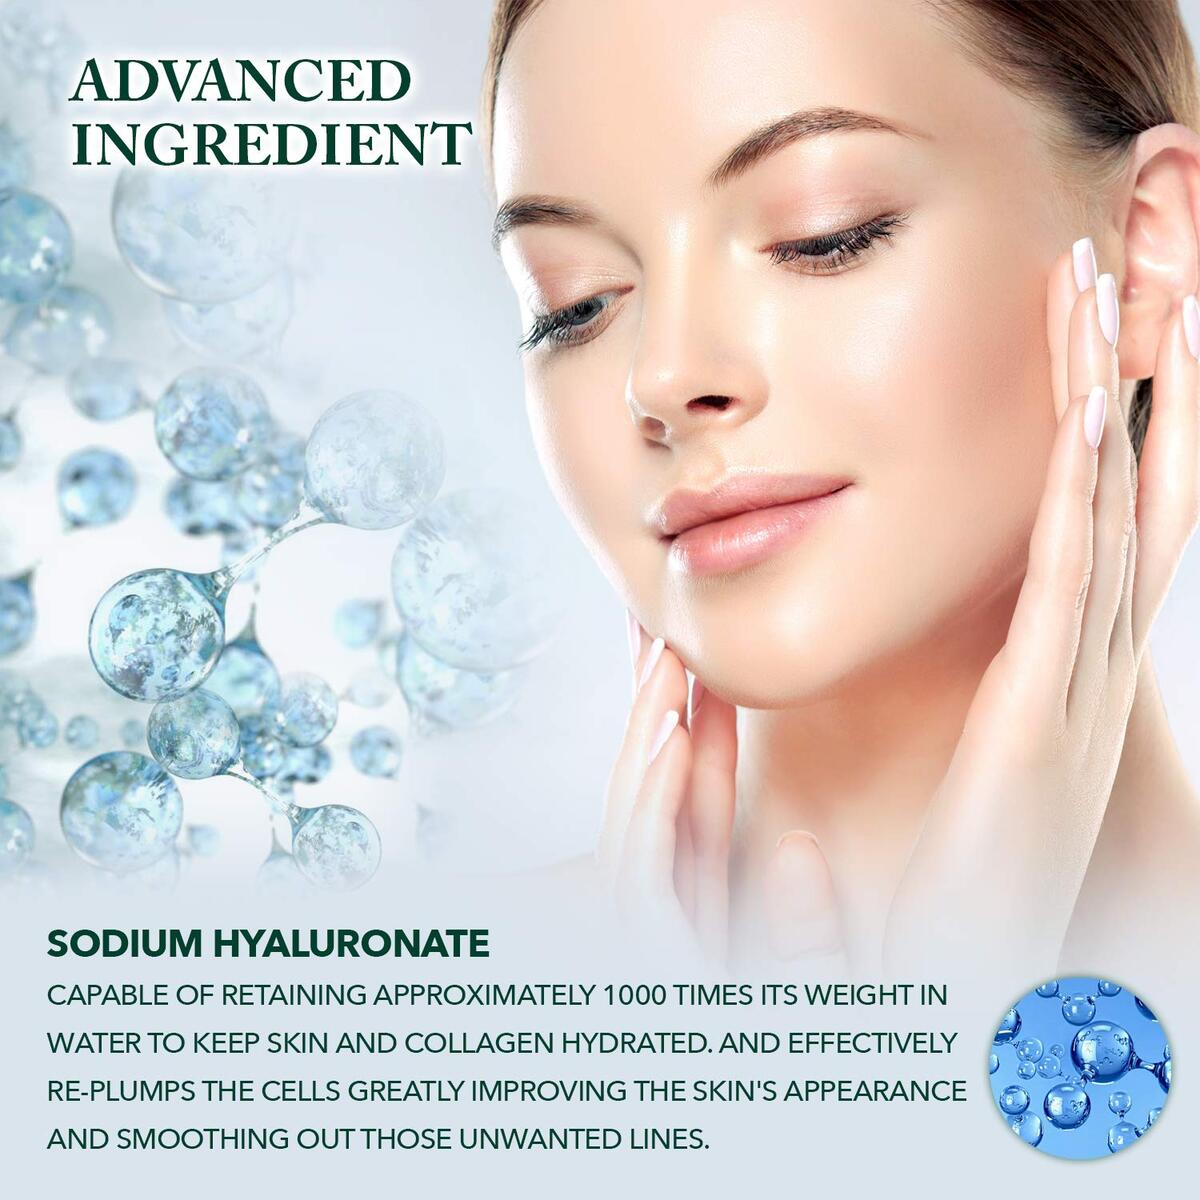 Eden Roe Hydra B5 Serum with Hyaluronic Acid Vitamin B5 Complex, Skin Plumping, Anti-Ageing Formula, Soft Skin with a Healthy Glow